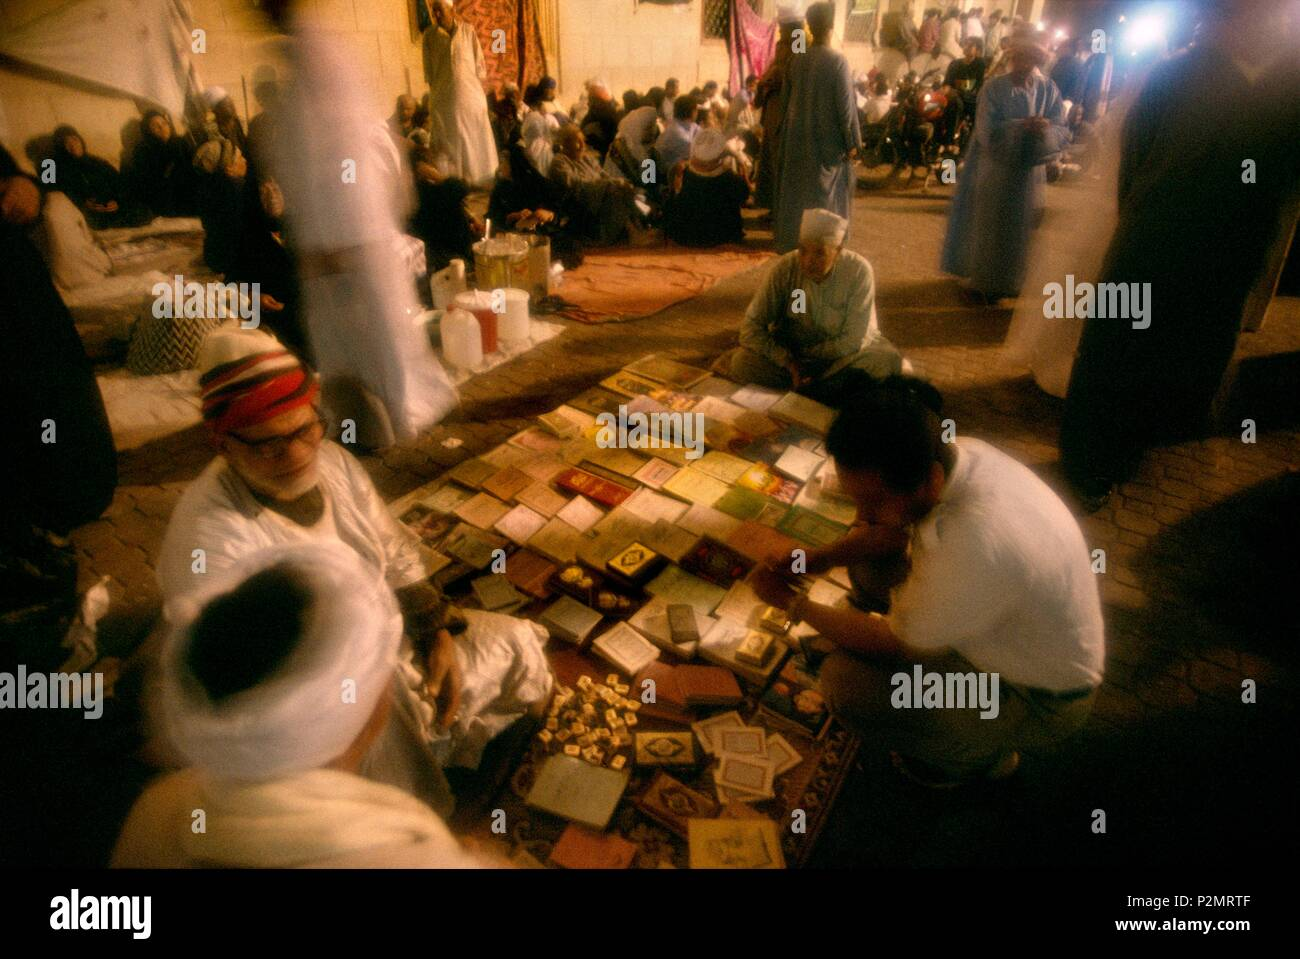 Egypt, Tanta, 1996, during the three days of festival (mouled) for Sidi Ahmad el-Badaoui, greatest Muslim saint of the country, pilgrims came with their families and get together on mats and carpets and sell books around Tanta's mosque - Stock Image